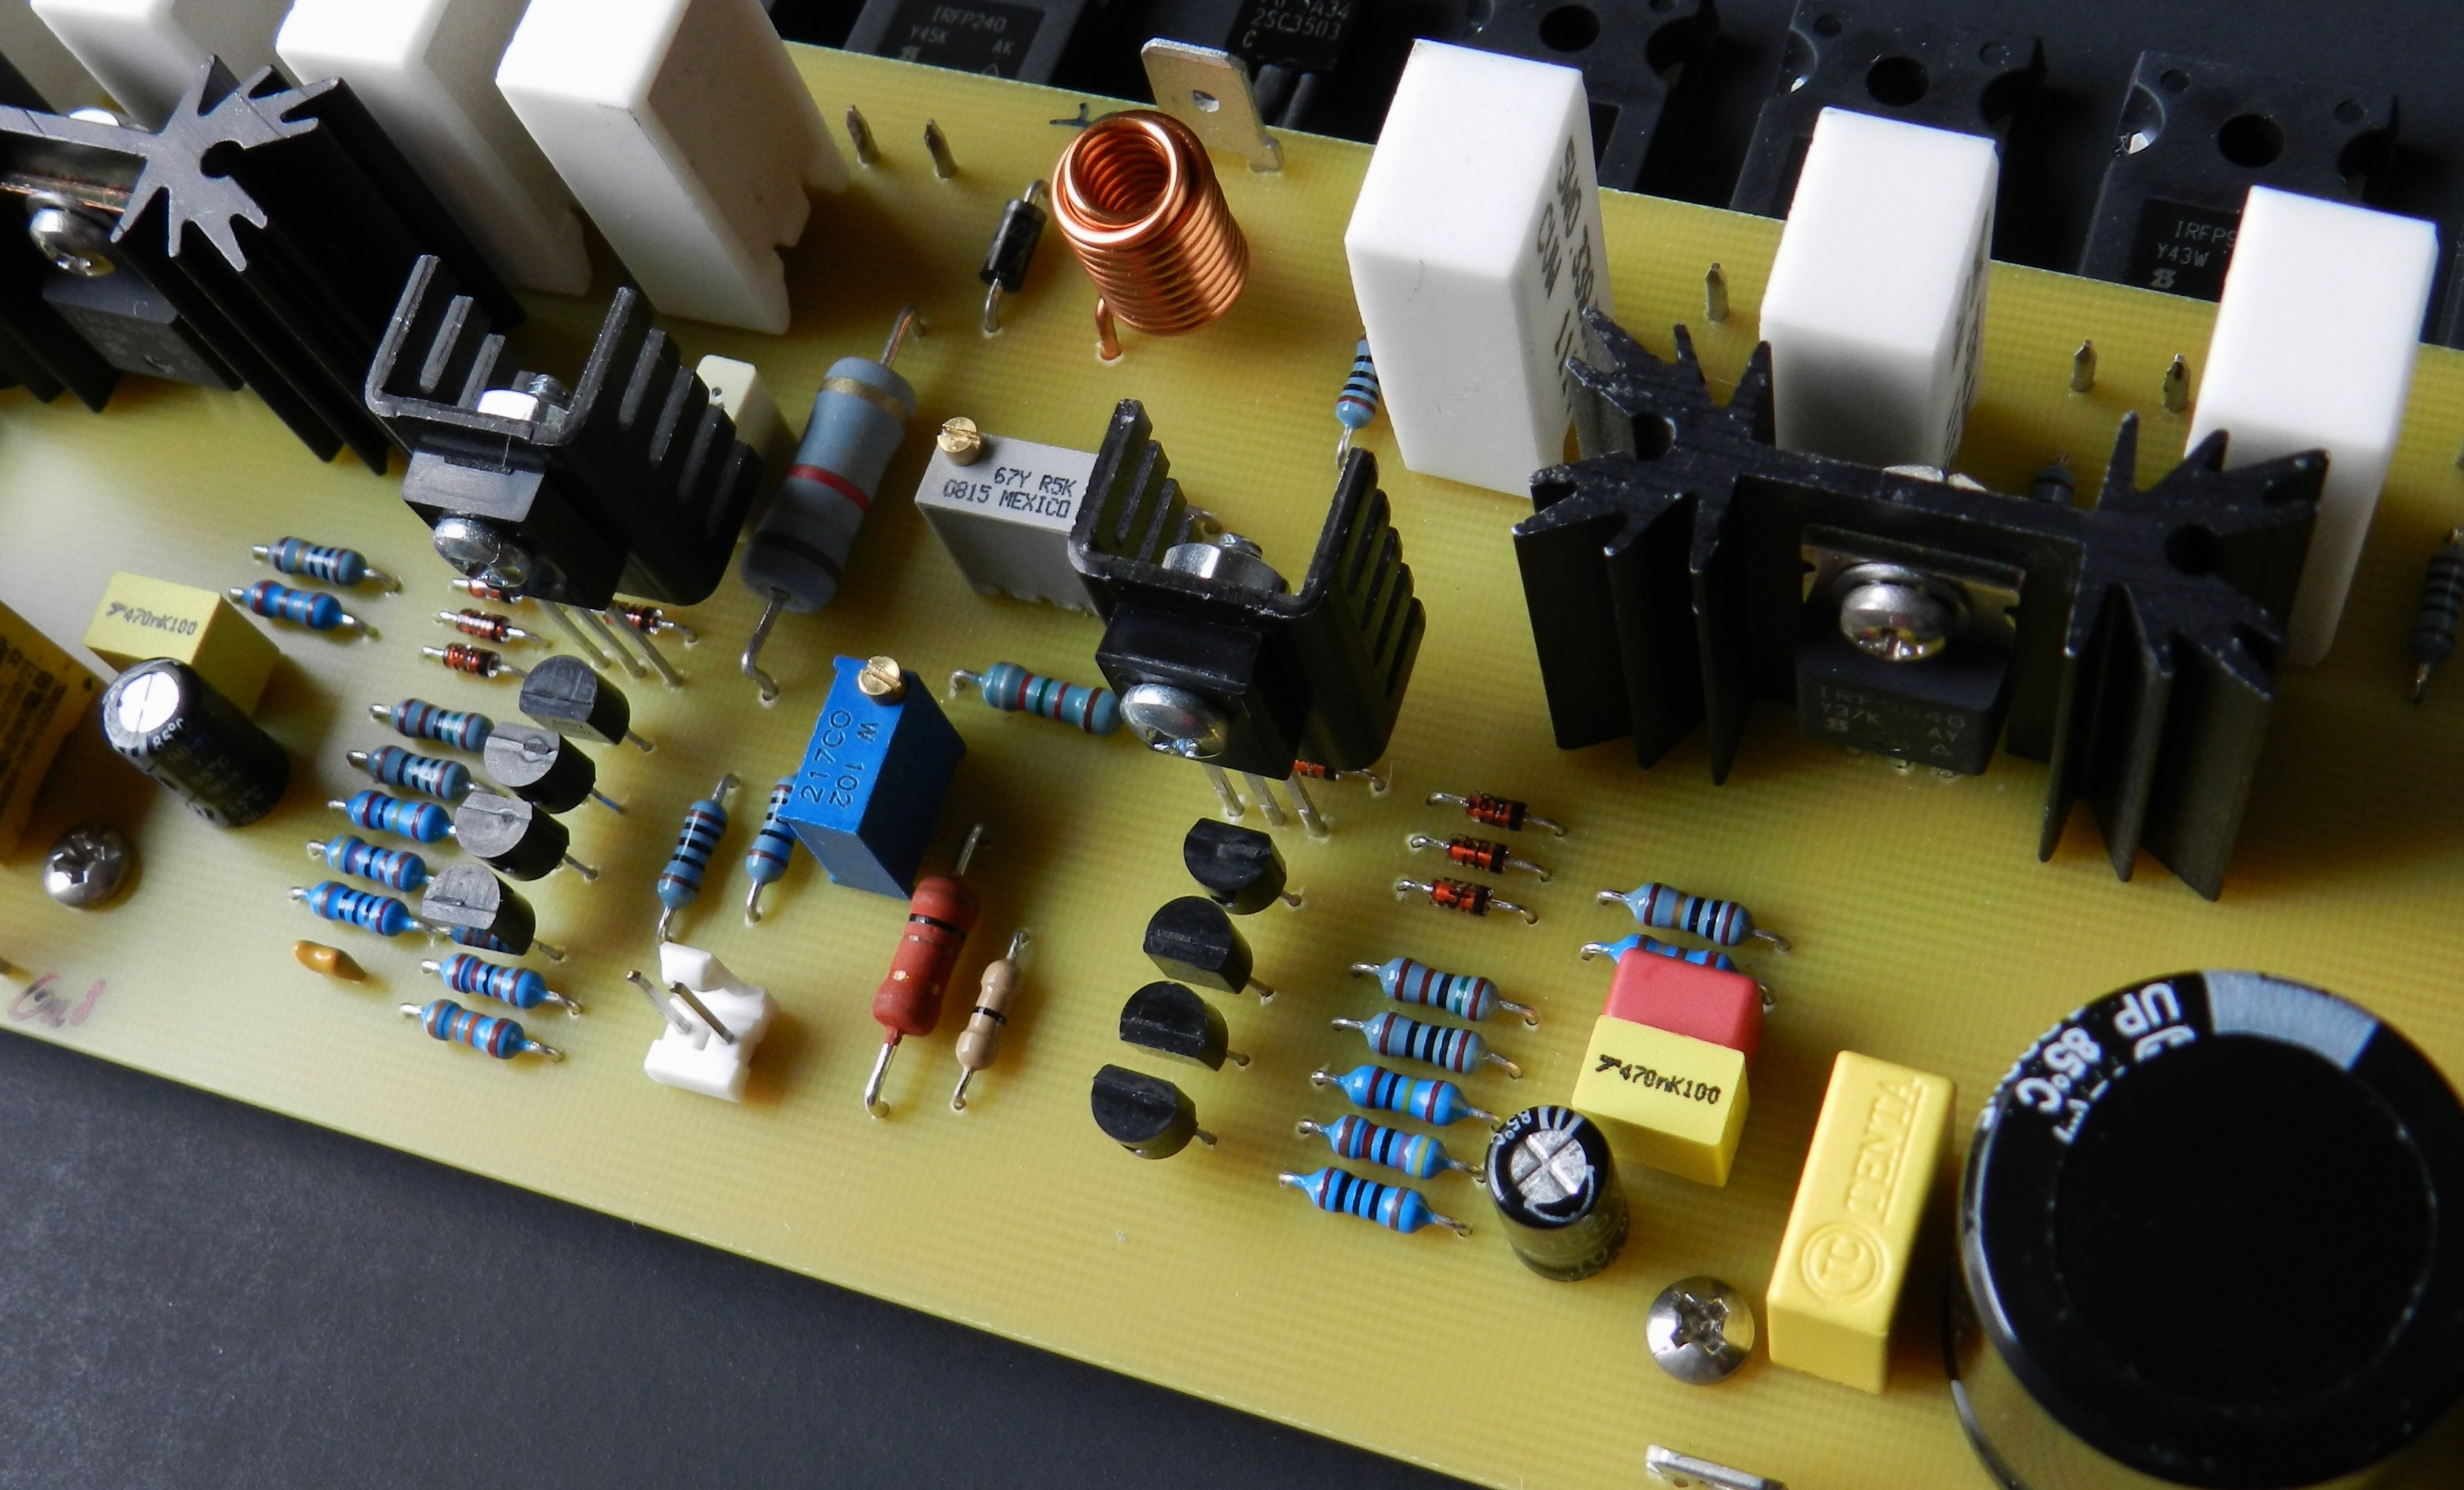 Project 50 Buildaudioamps On After Delay With Mosfet Electronic Projects Circuits Is A Version Of The Fully Symmetrical Complementary Current Feedback Amplifier Implemented Two Stage